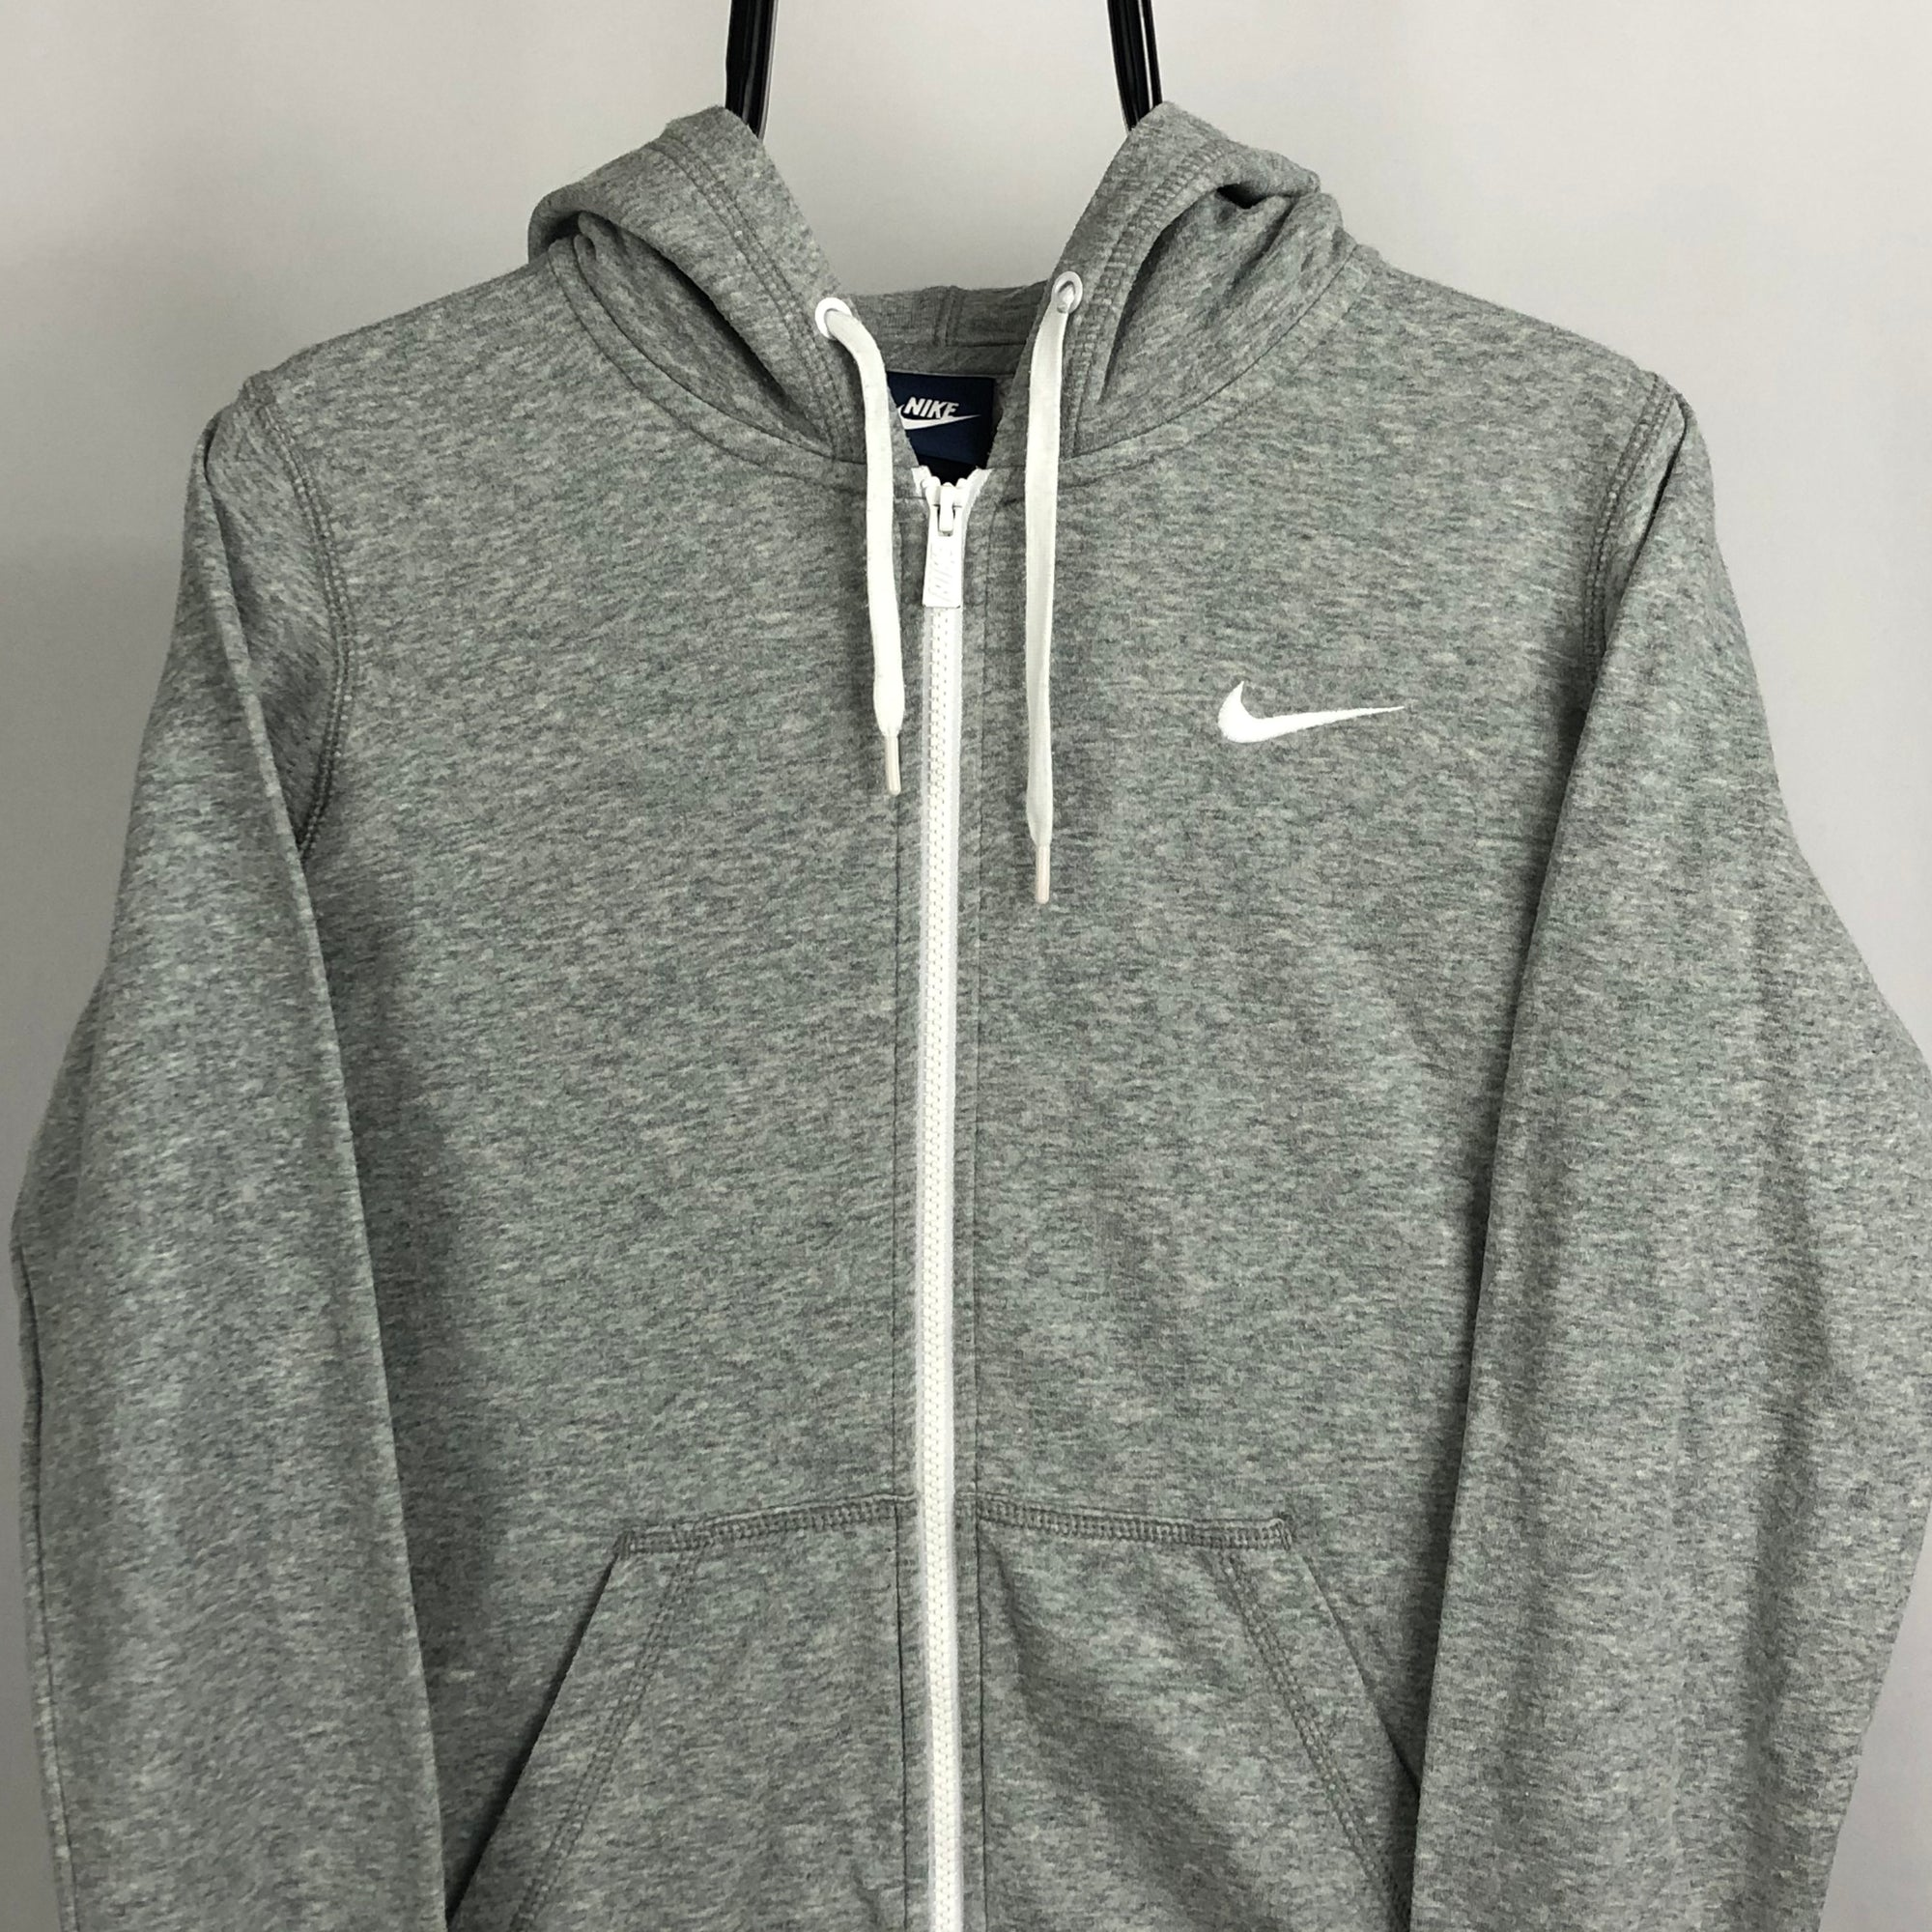 Nike Embroidered Swoosh Zip Hoodie in Grey - Men's Small/Women's Medium